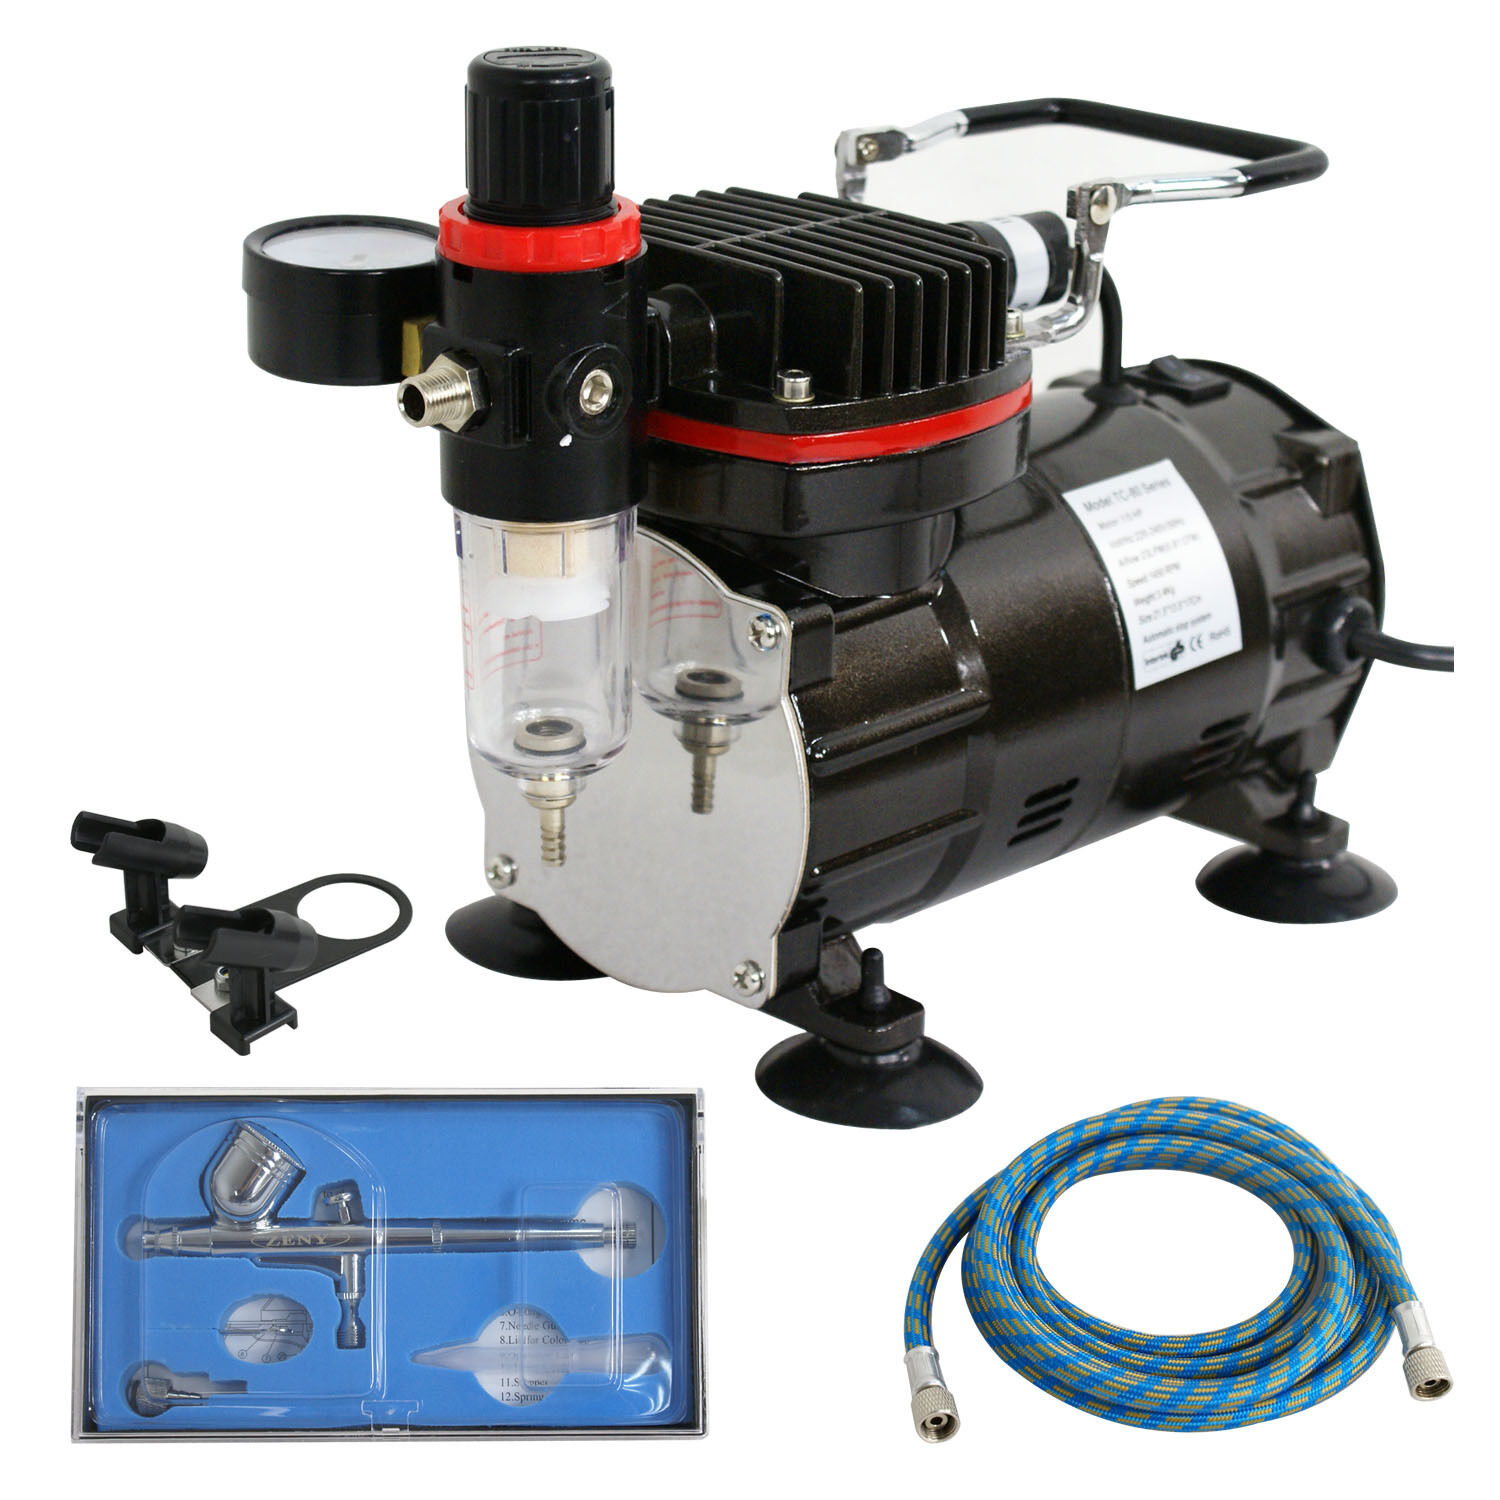 New Airbrush Kit Single Cylinder Piston Air Compressor Dual-Action Hobby Set Segawe GSD-D1-1226A - фотография #2